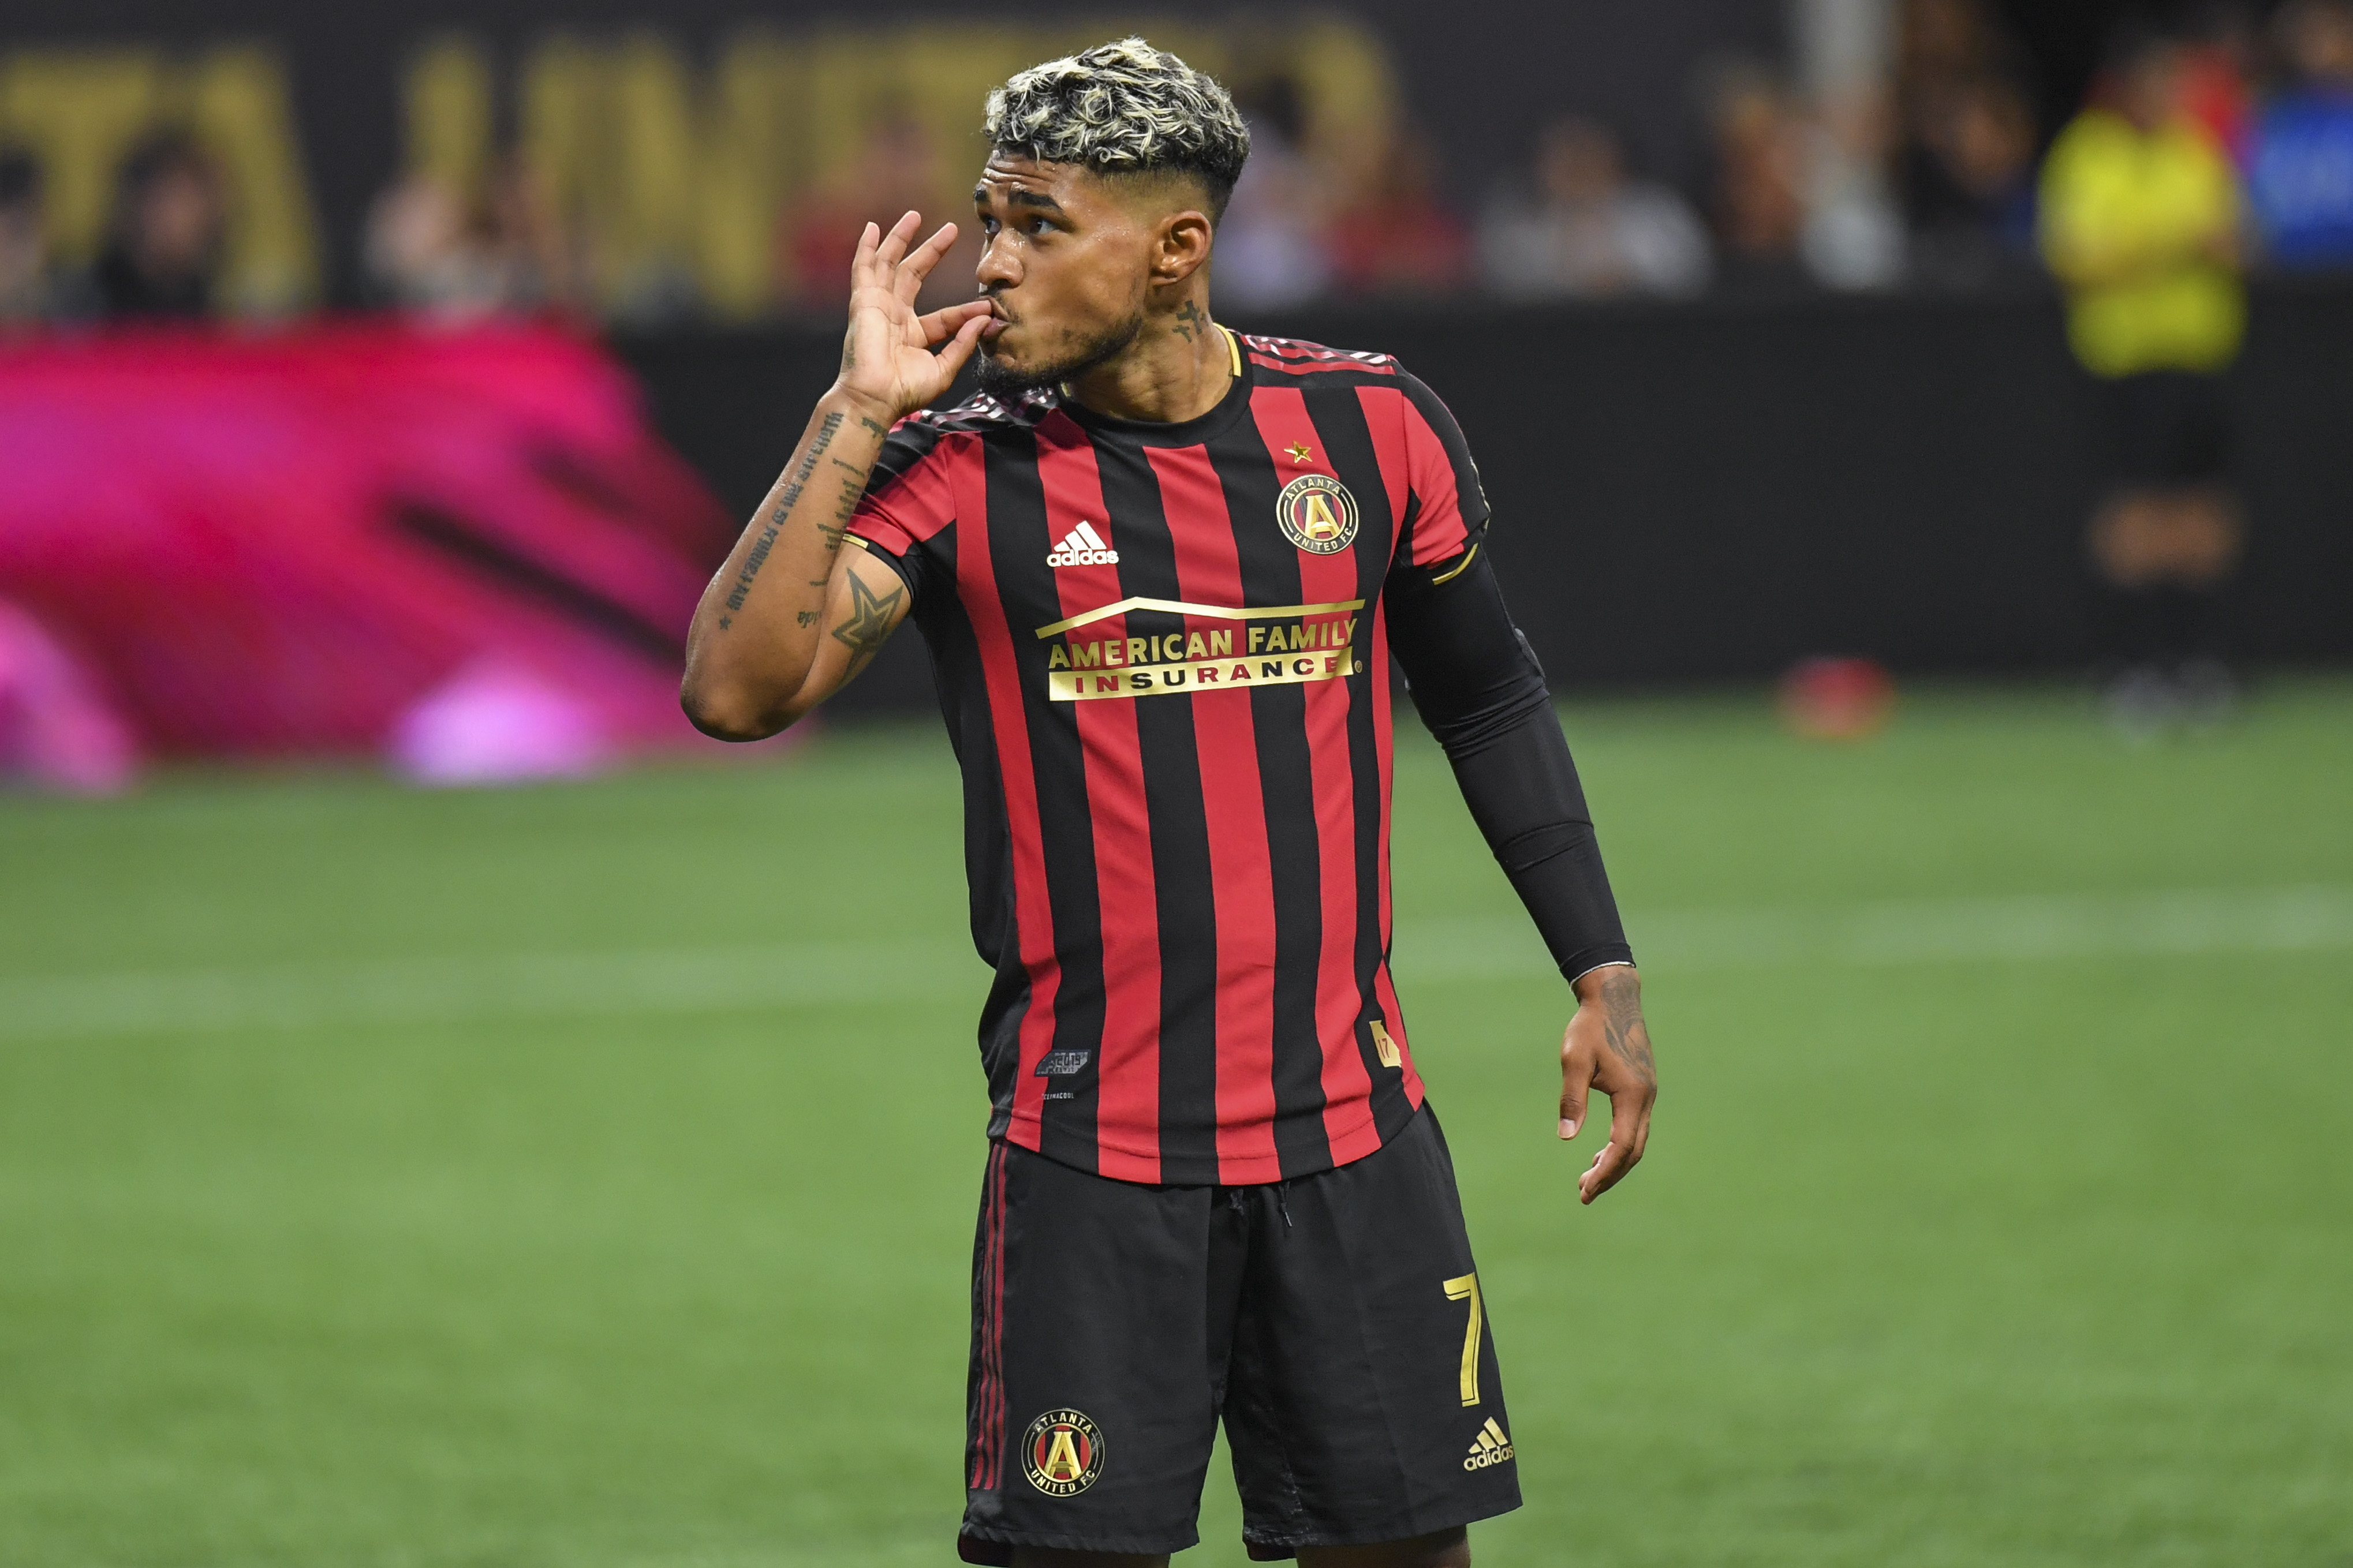 bf966fbae3 ATL UTD 2 - Dirty South Soccer